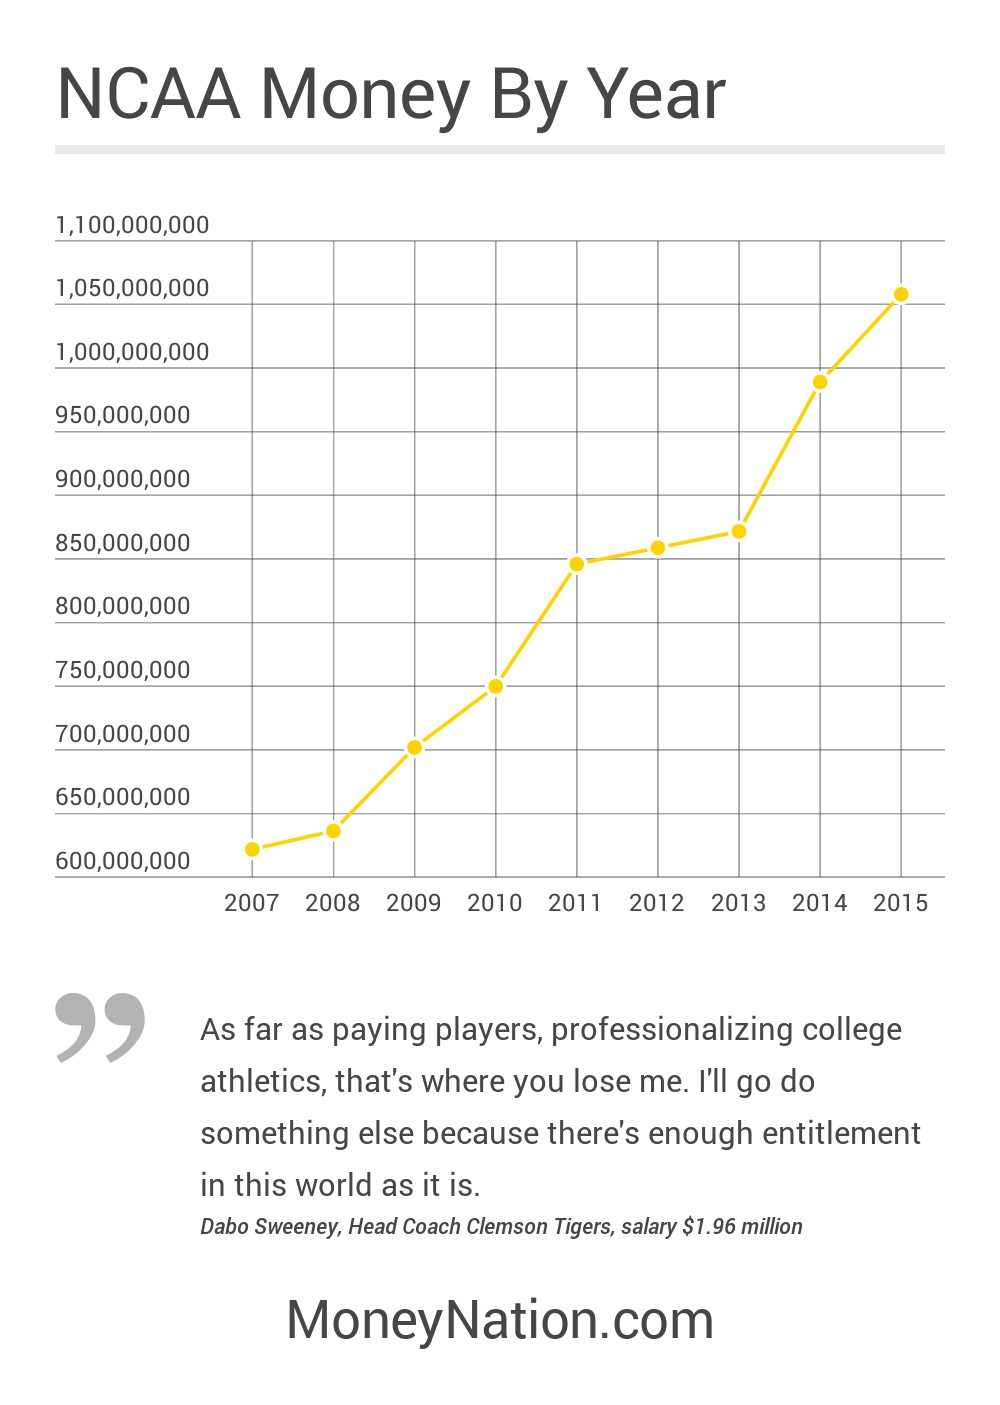 How Much Money Does the NCAA Make? - Money Nation